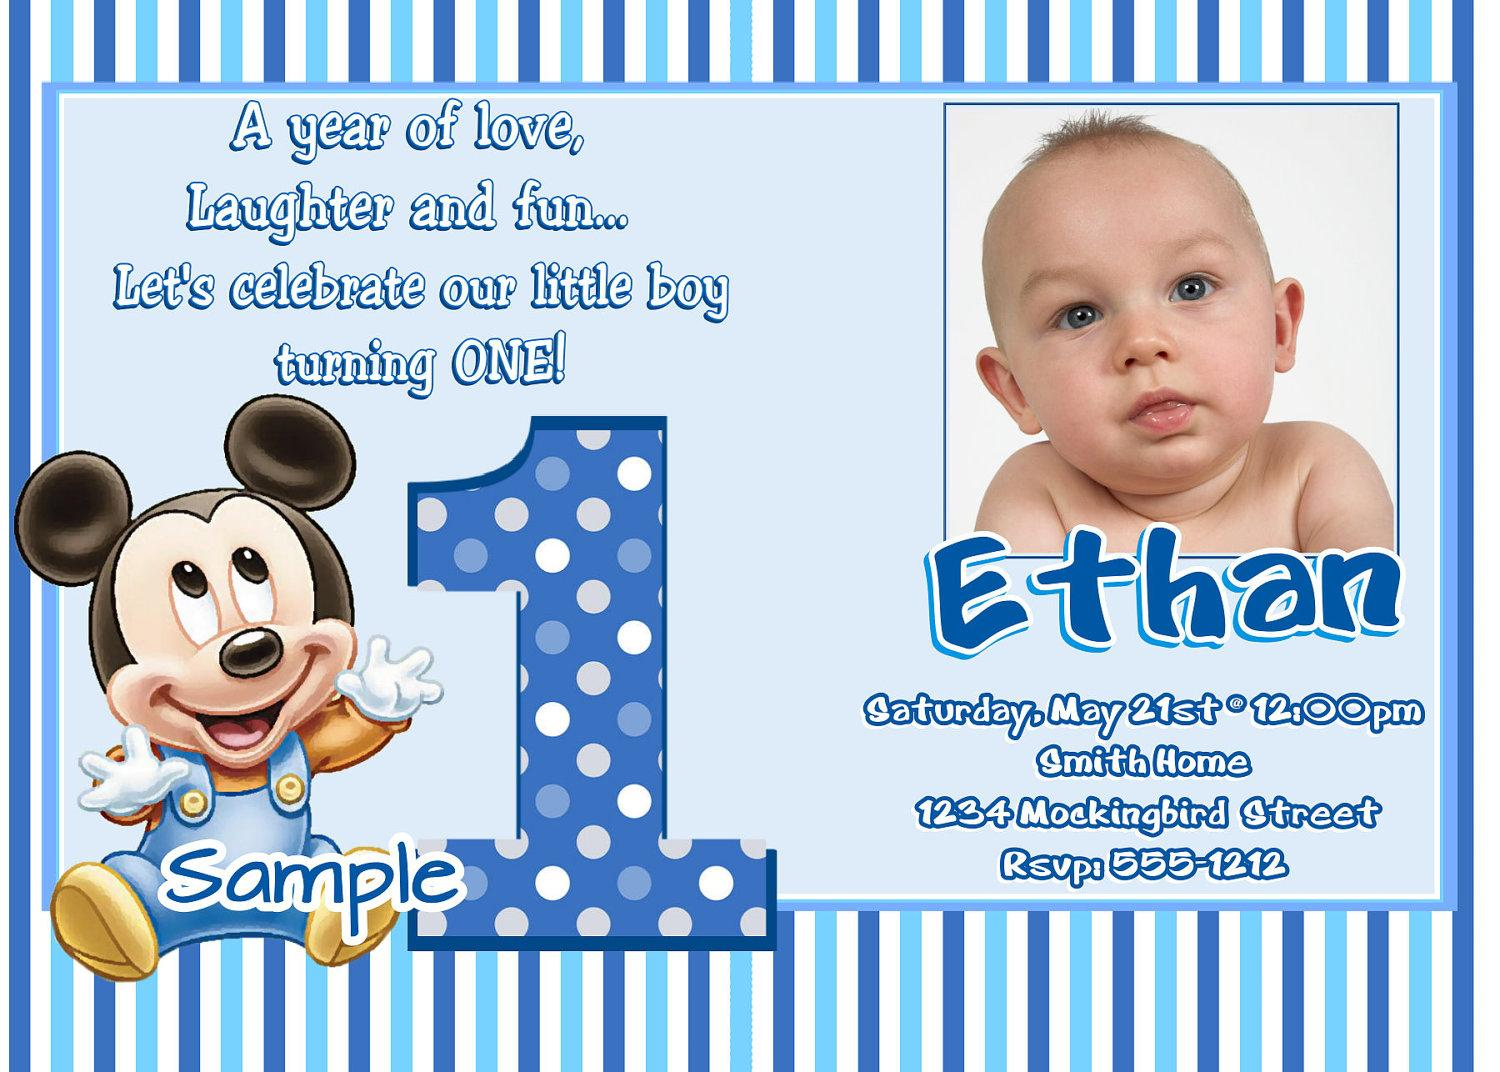 one year old birthday invitation templates ; first-birthday-invitation-wording-by-way-of-using-an-impressive-design-concept-for-your-catchy-Baby-Shower-Invitation-Templates-7